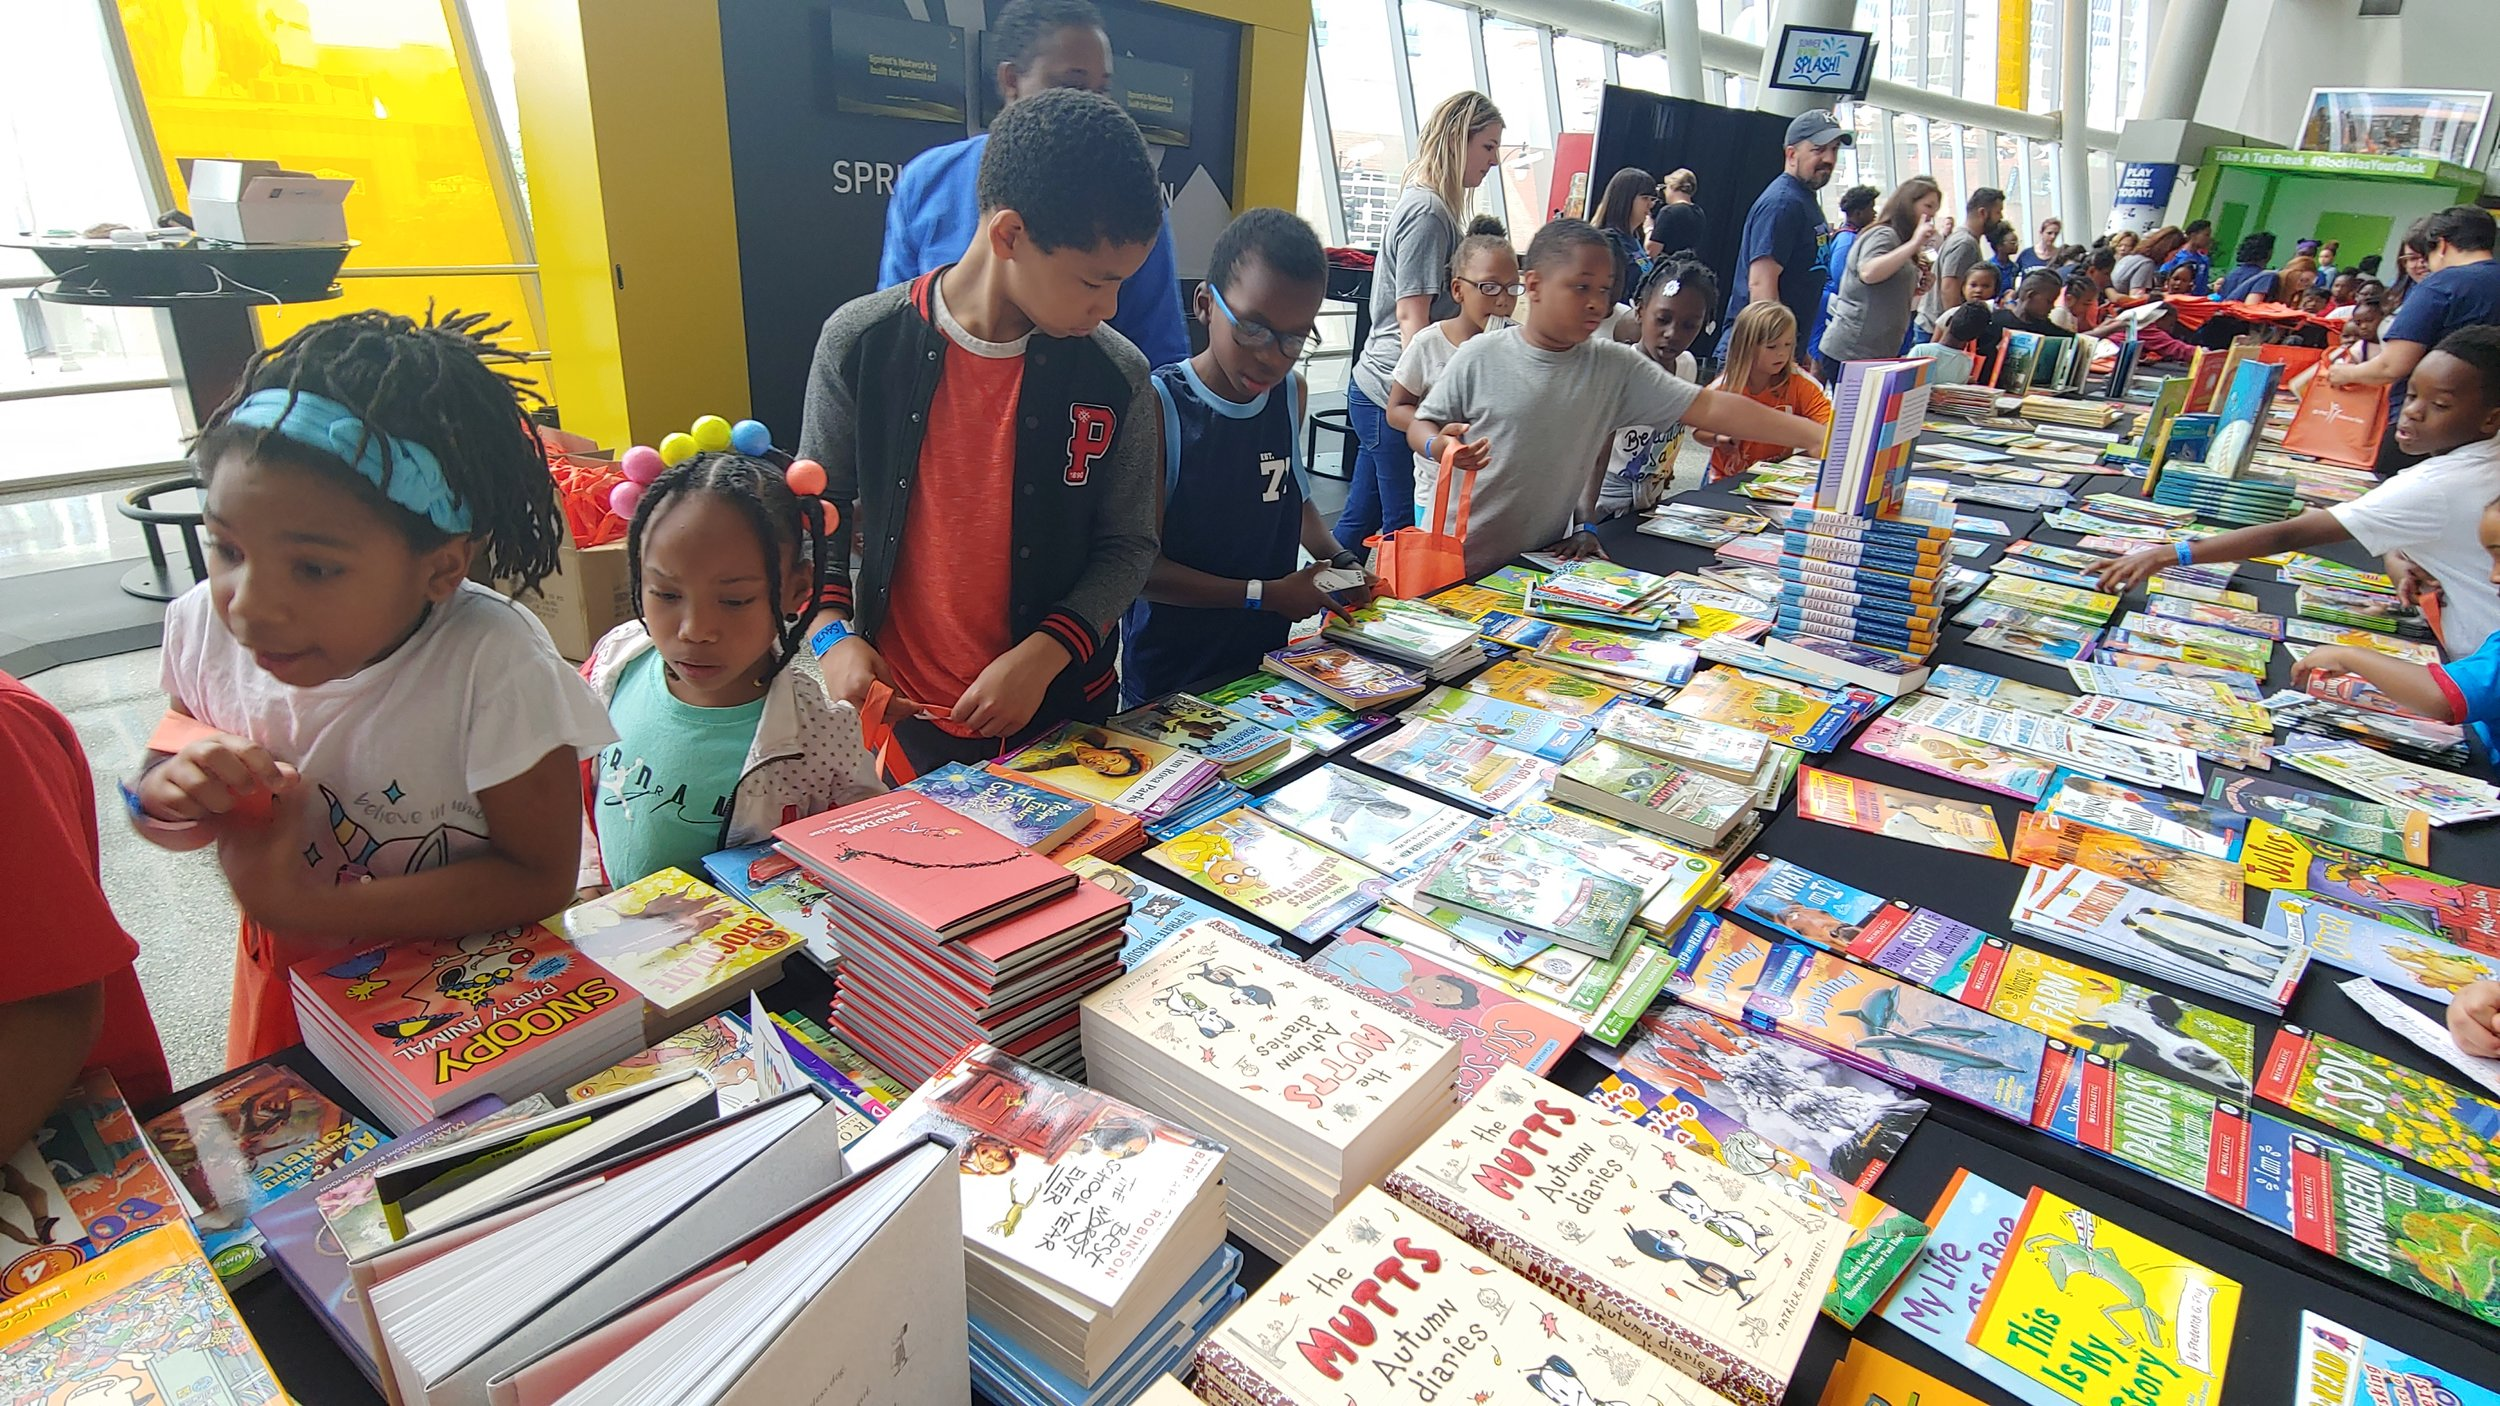 Children from LINC's summer program at Santa Fe Elementary School in Hickman Mills, including 7-year-old Za'Kirah in the blue headband, pick out books to take home at Turn the Page KC's Summer Reading Splash celebration at the Sprint Center June 19.